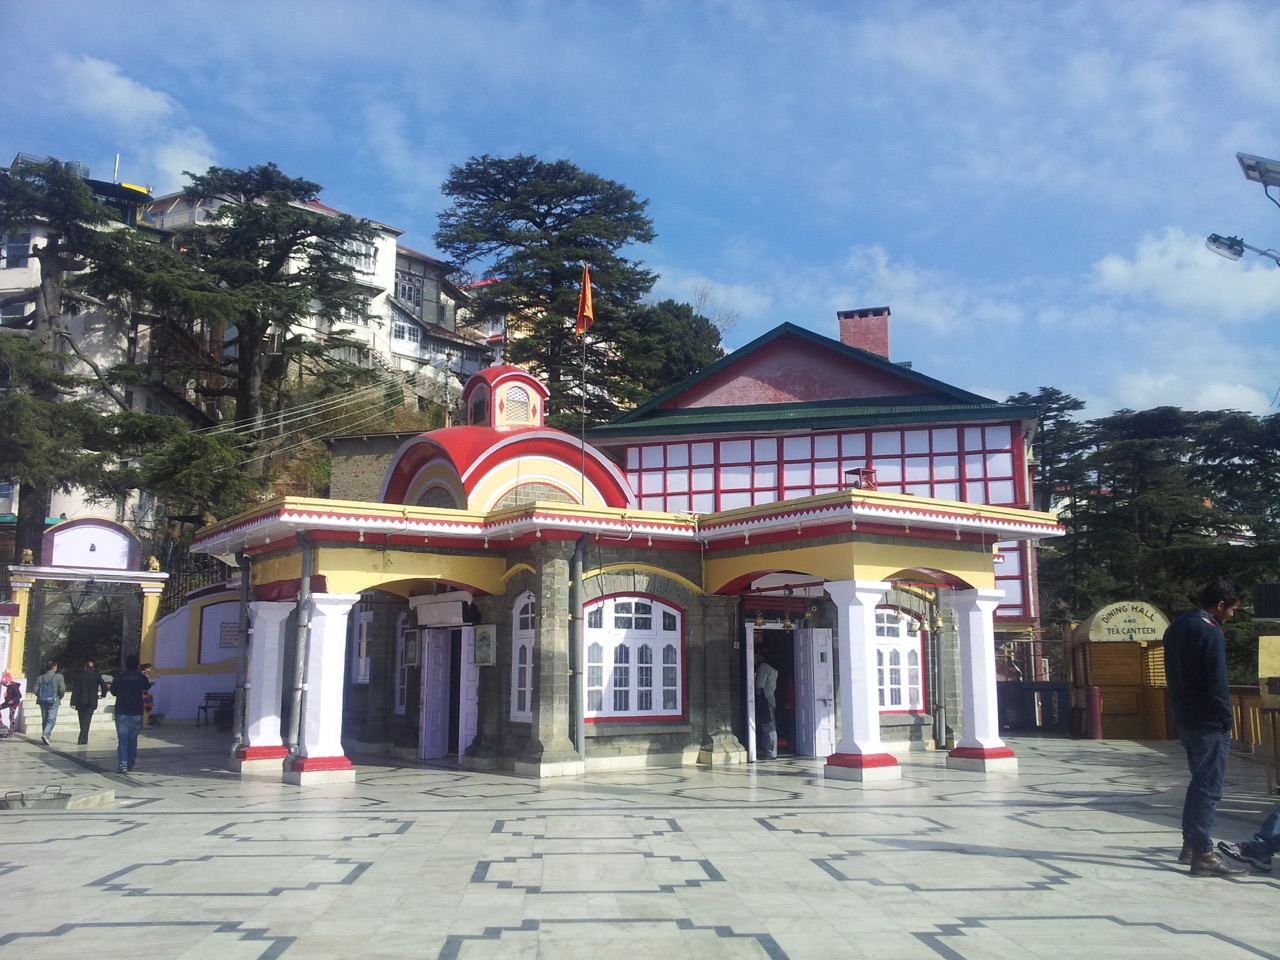 Kali Bari of Shimla. It is forbidden to take photographs inside the temple itself.